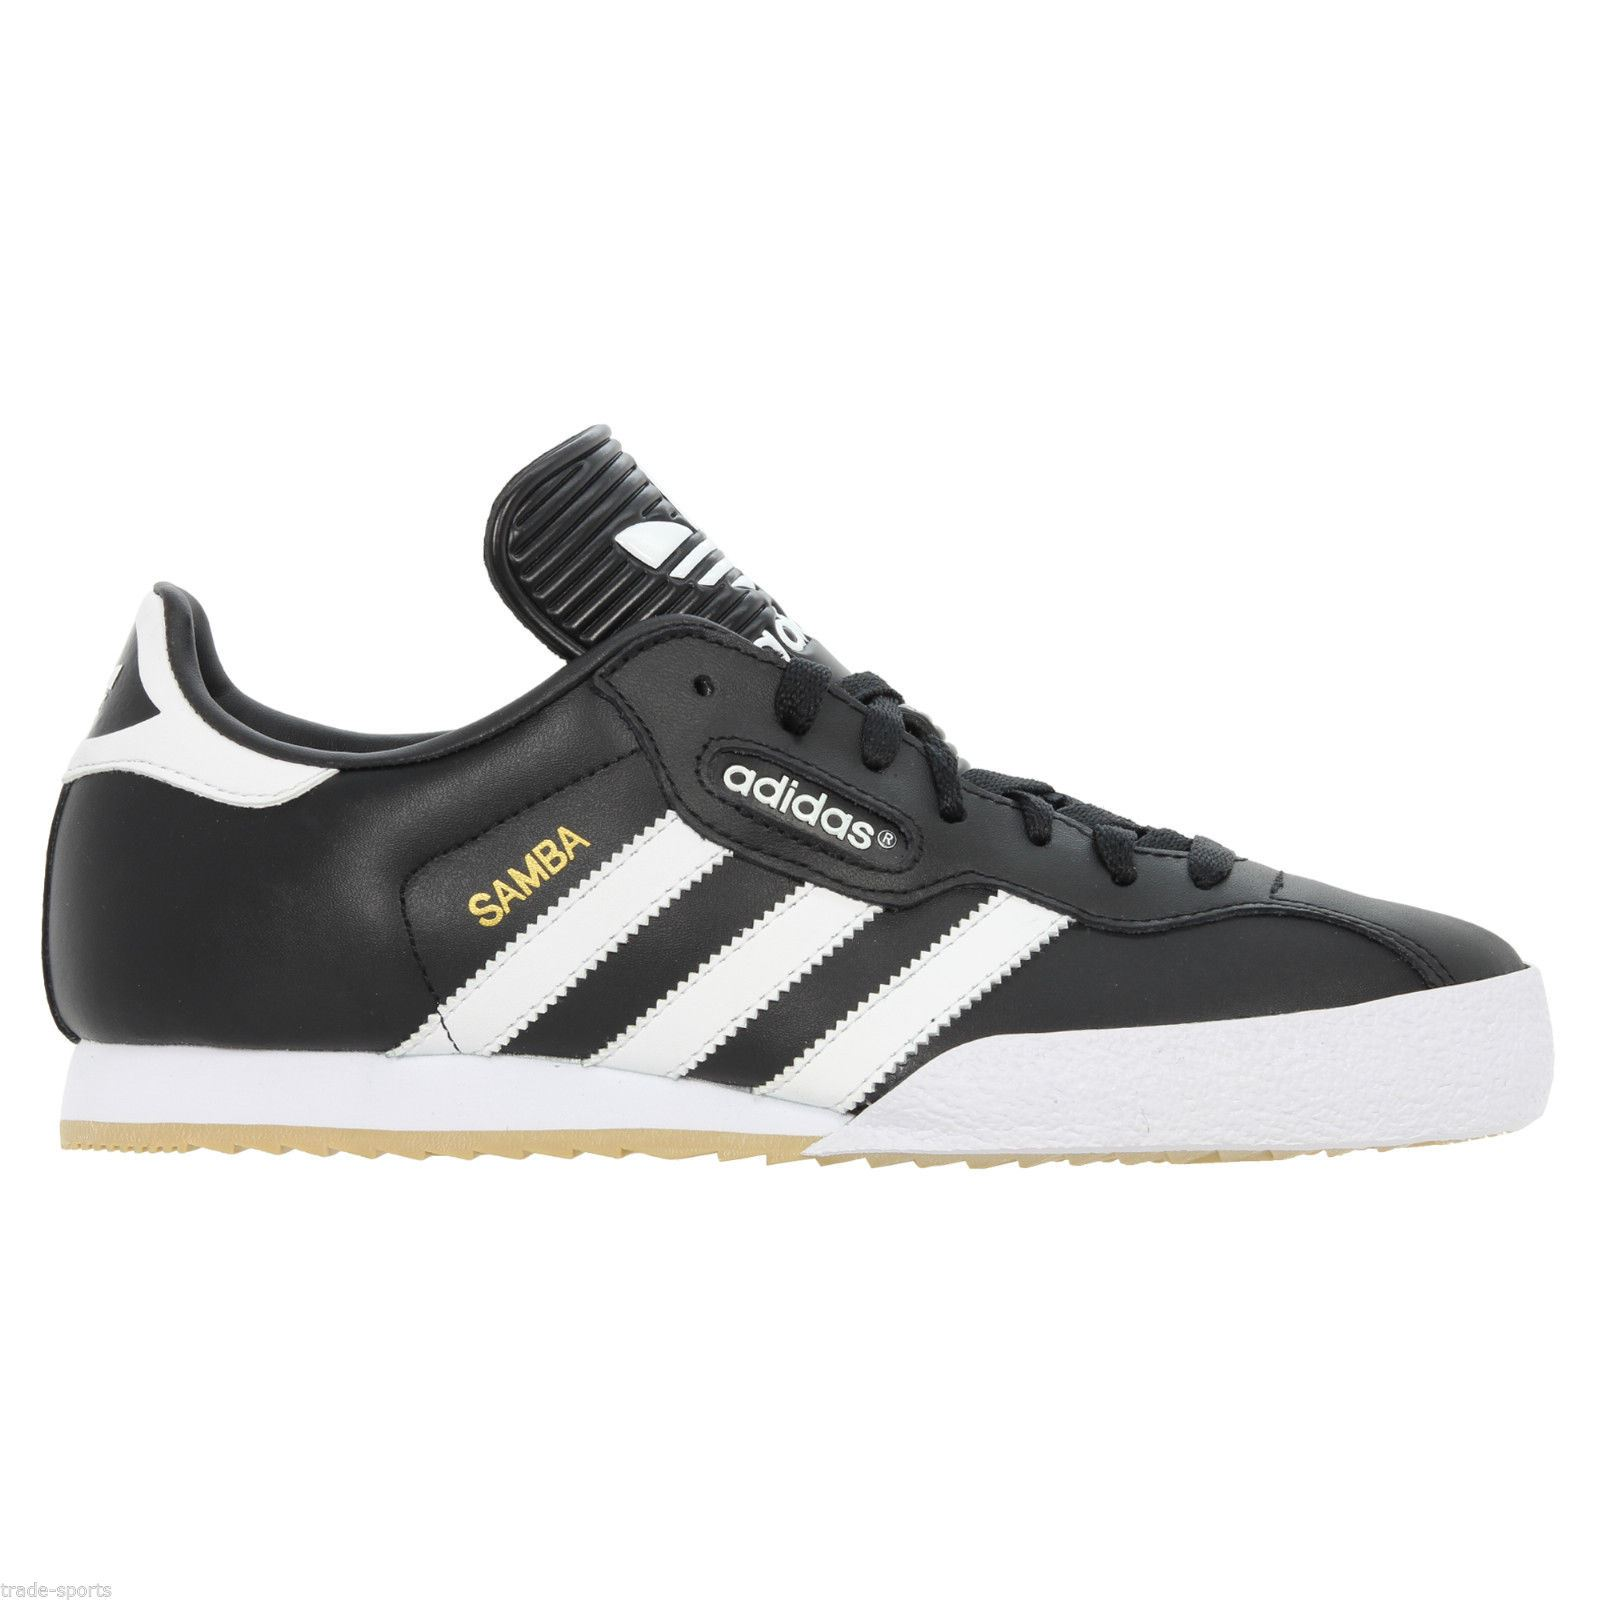 buy online 9d496 80b97 Details about adidas ORIGINALS SAMBA SUPER TRAINERS MEN S SNEAKERS SHOES  RETRO FOOTBALL